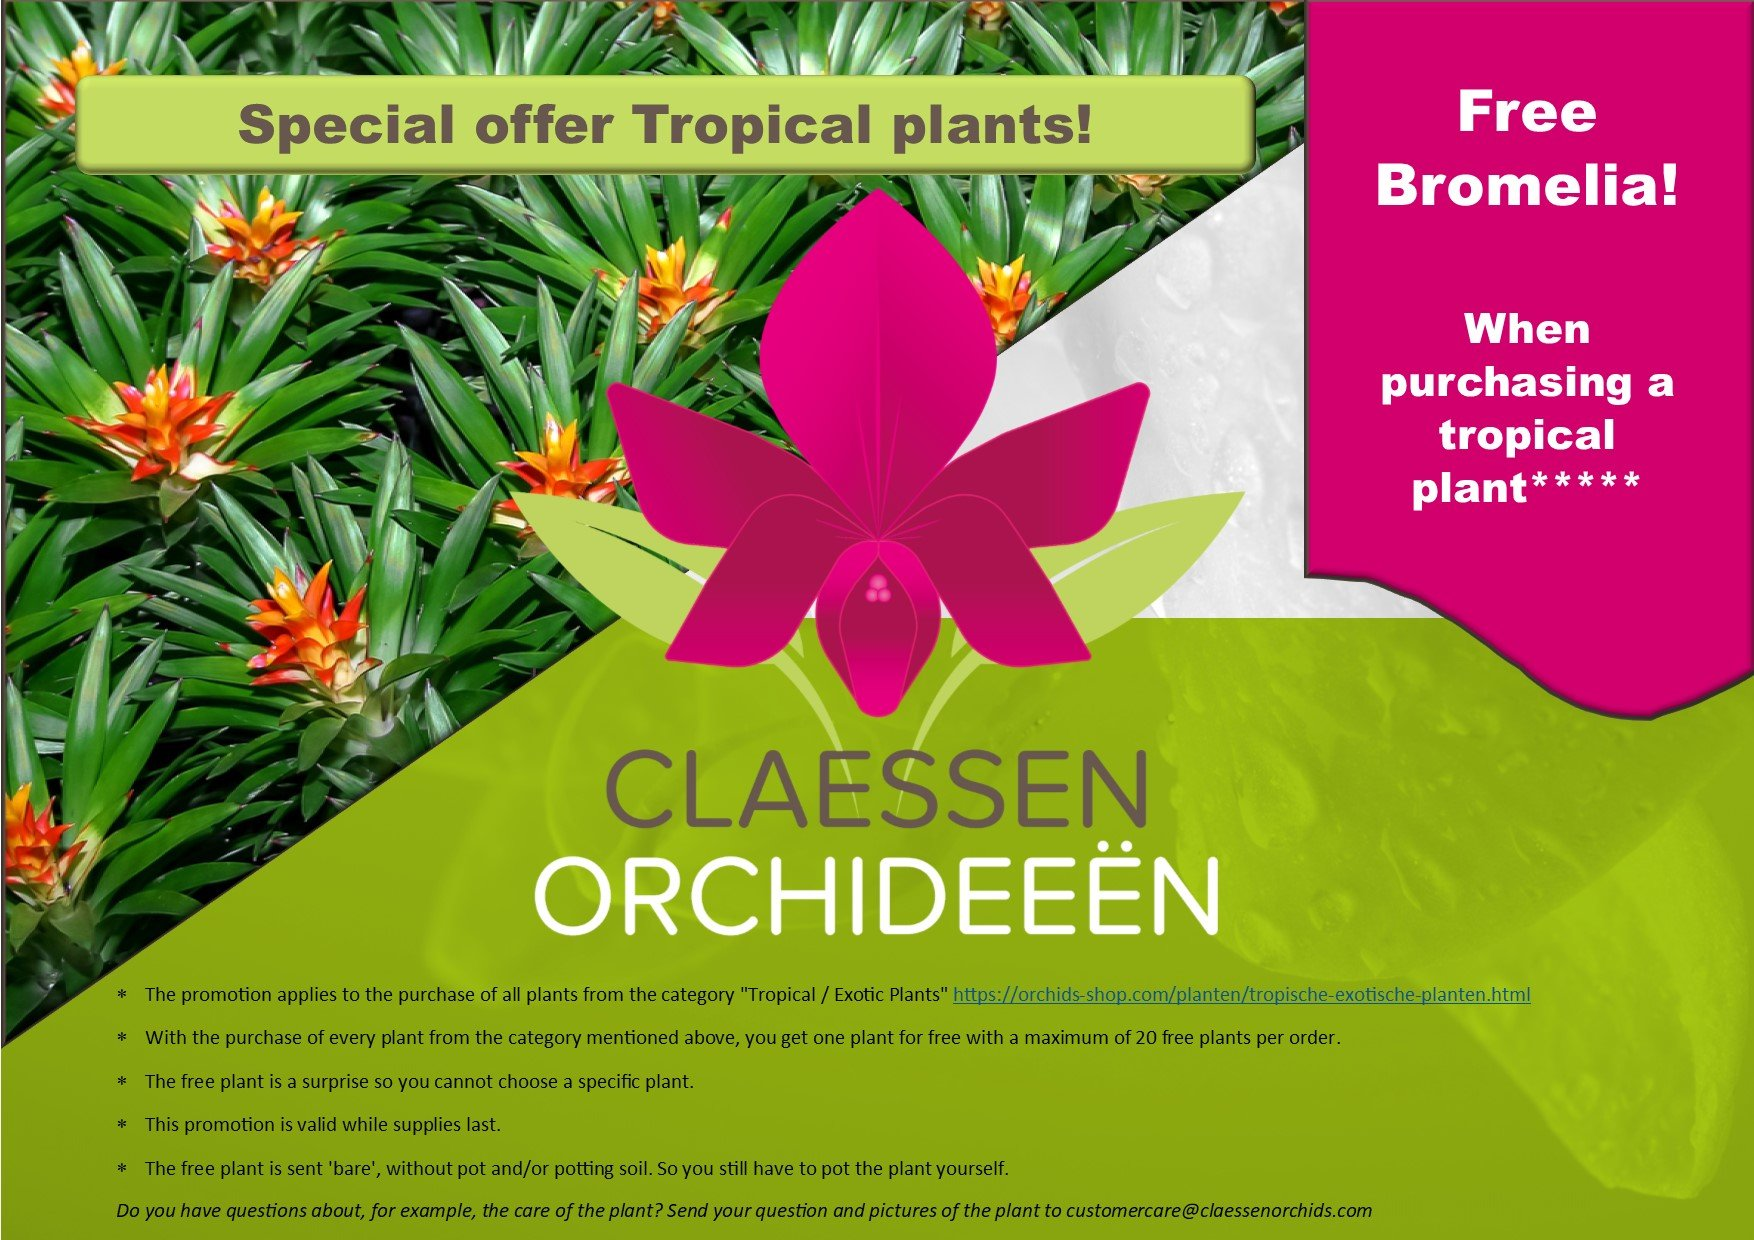 Special offer Tropical plants